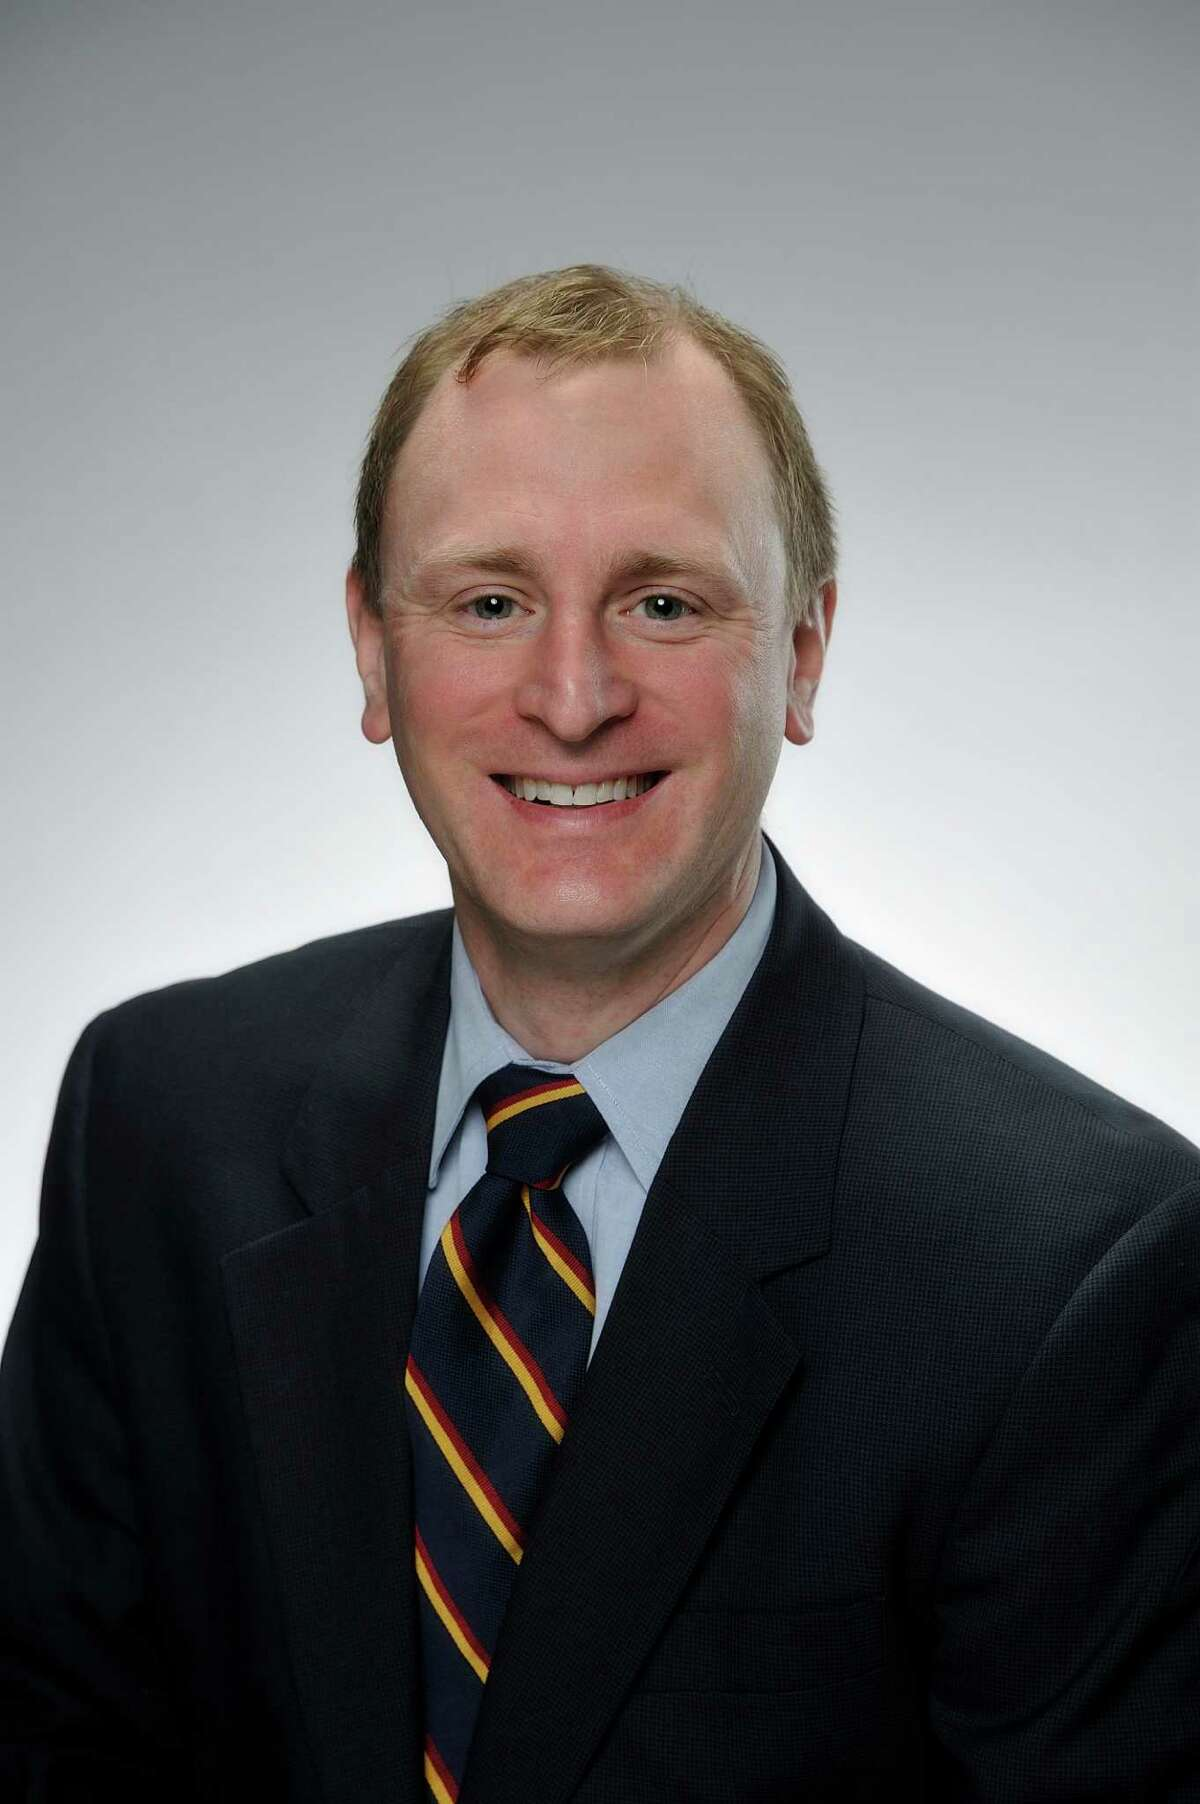 Russ Bynum has been appointed general manager of the Houston region Hillwood Communities, a Perot company. Bynum will oversee Hillwoodés master-planned community projects including Pomona, as well as future acquisitions and developments in Houston.